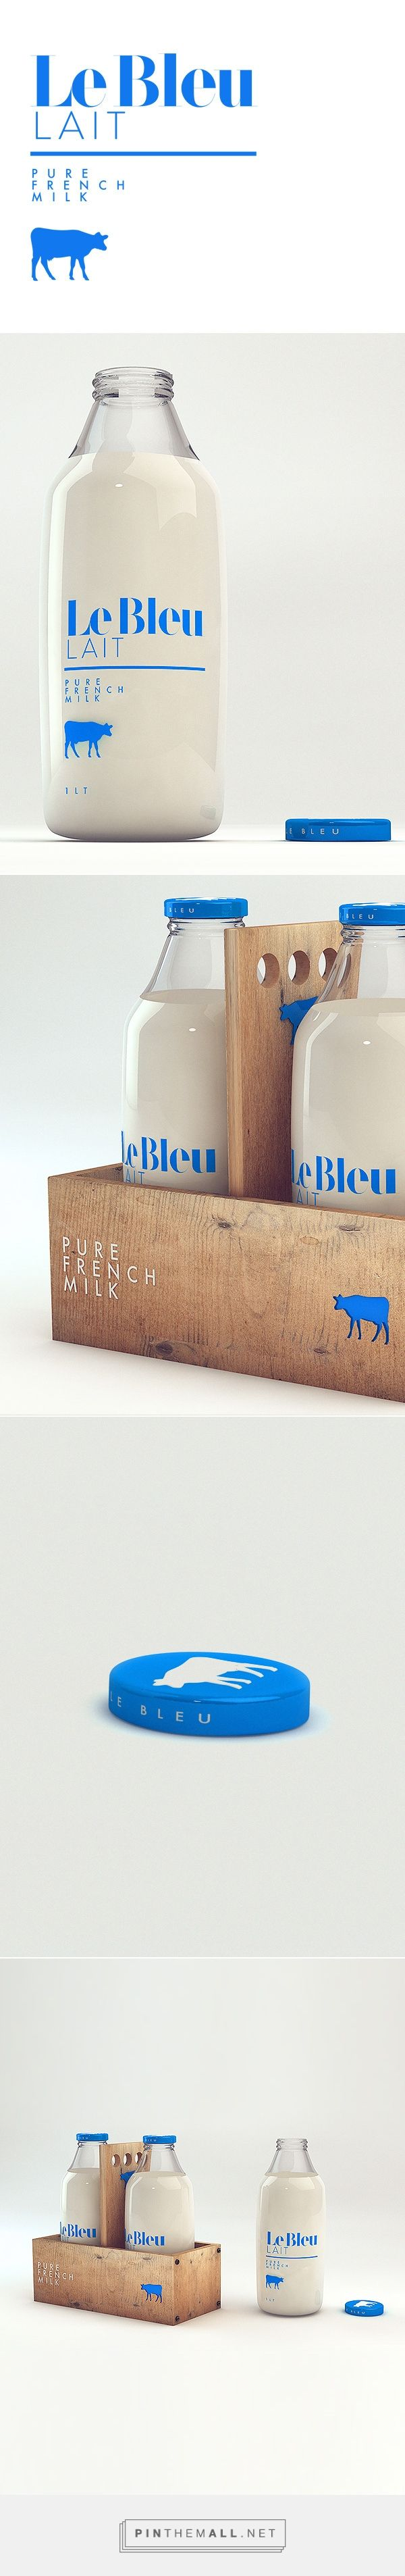 Le Bleu Lait on Behance by Isabela Rodriguez curated by Packaging Diva PD. One more milk favorite packaging I couldn't resist.